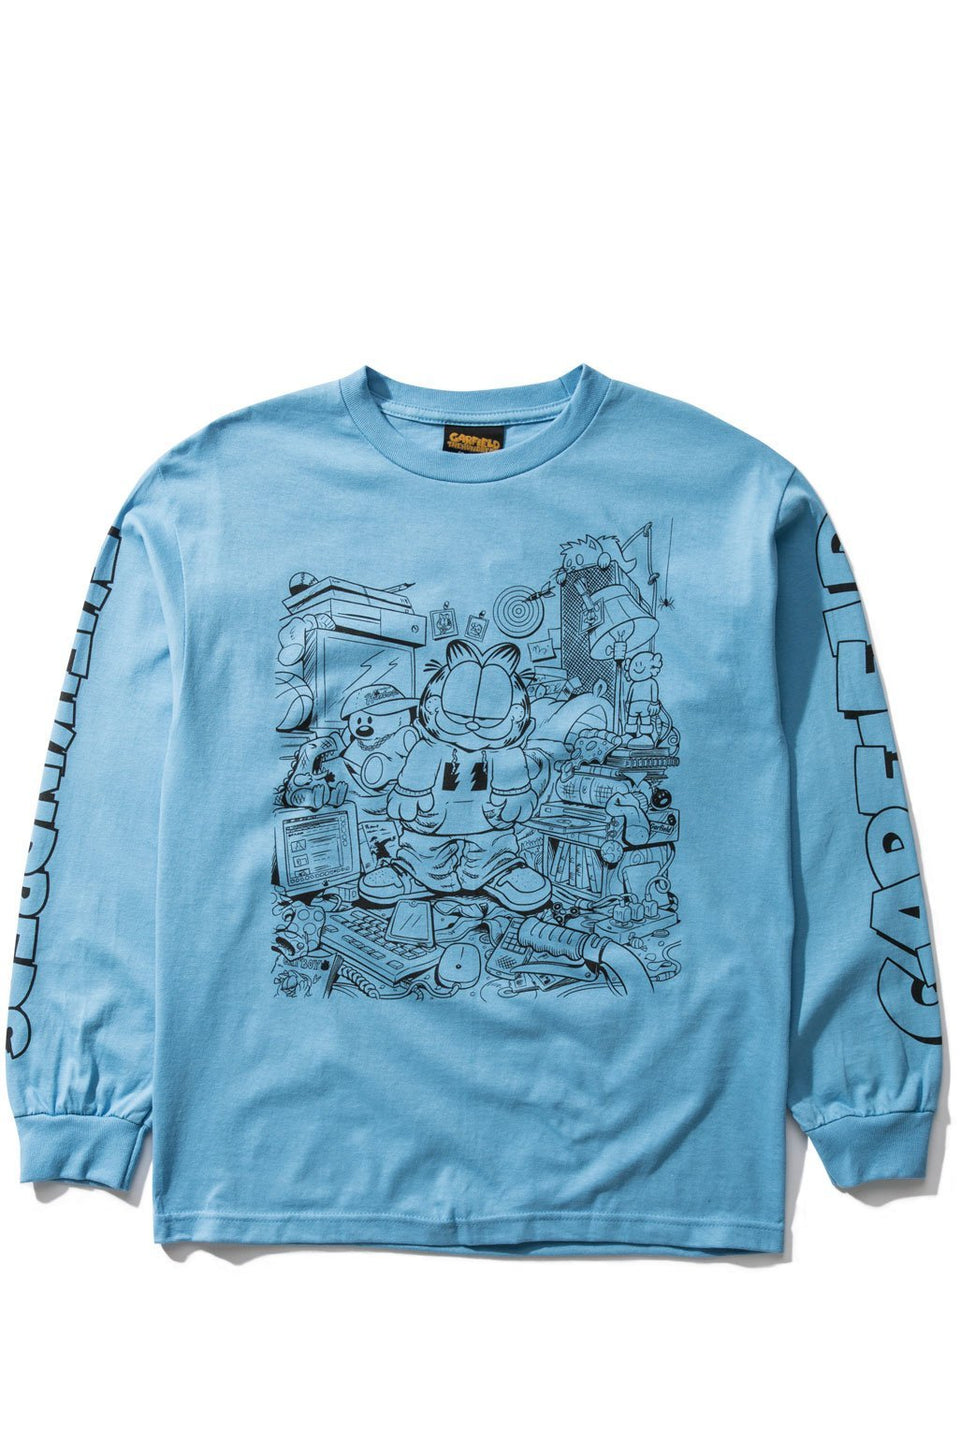 Messy Garfield L/S Shirt-TOPS-The Hundreds UK